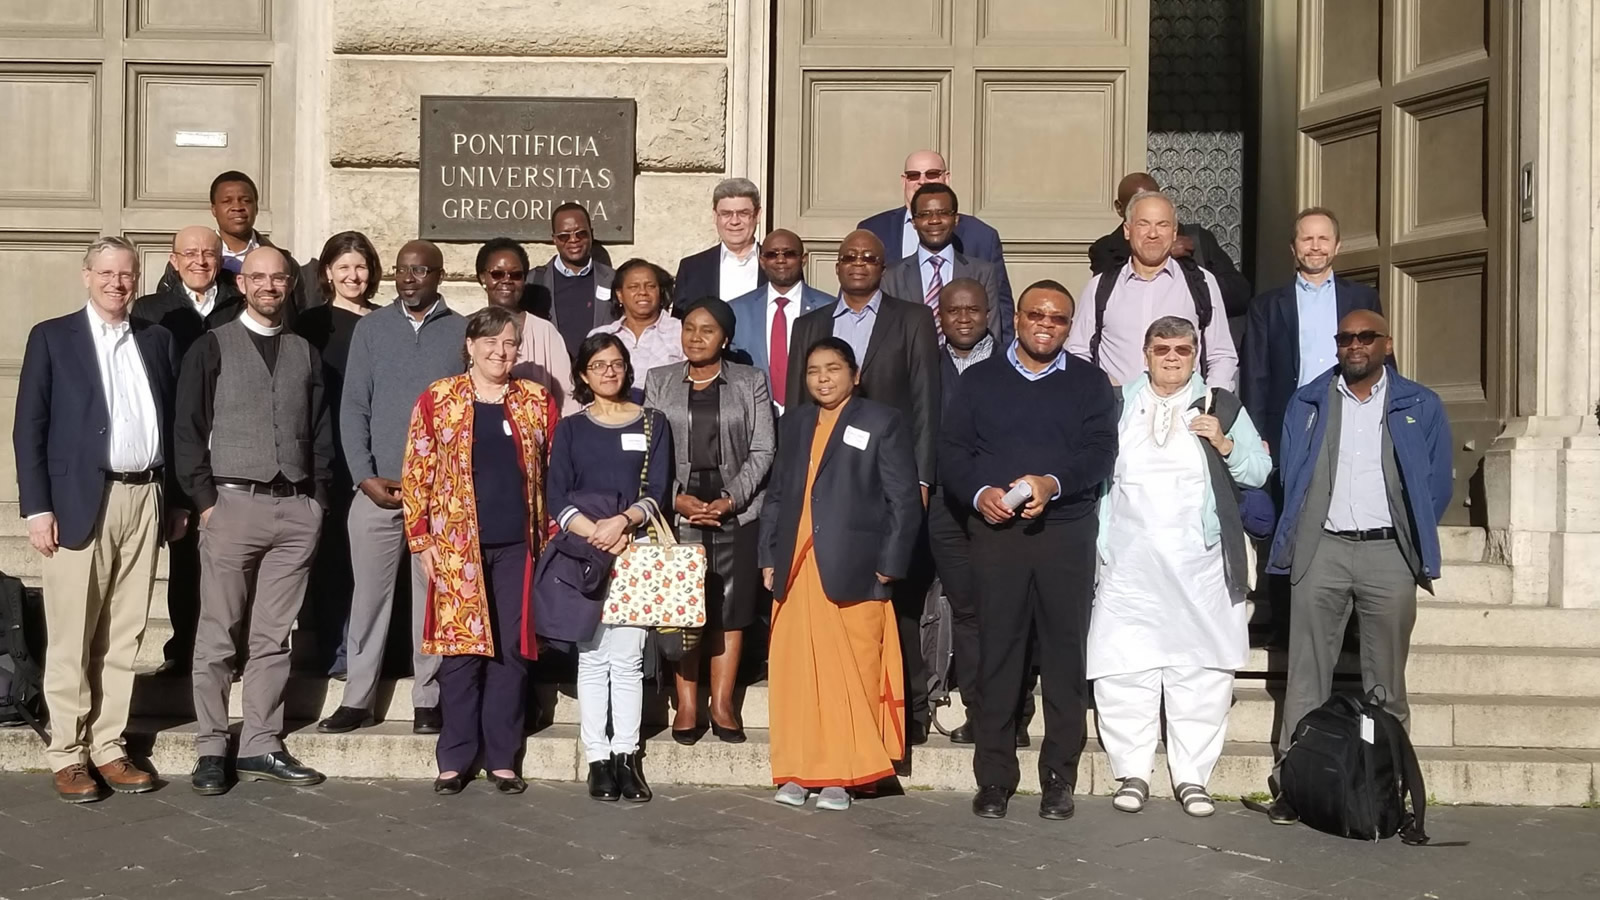 Workshop participants gather outside Pontifical Gregorian University.